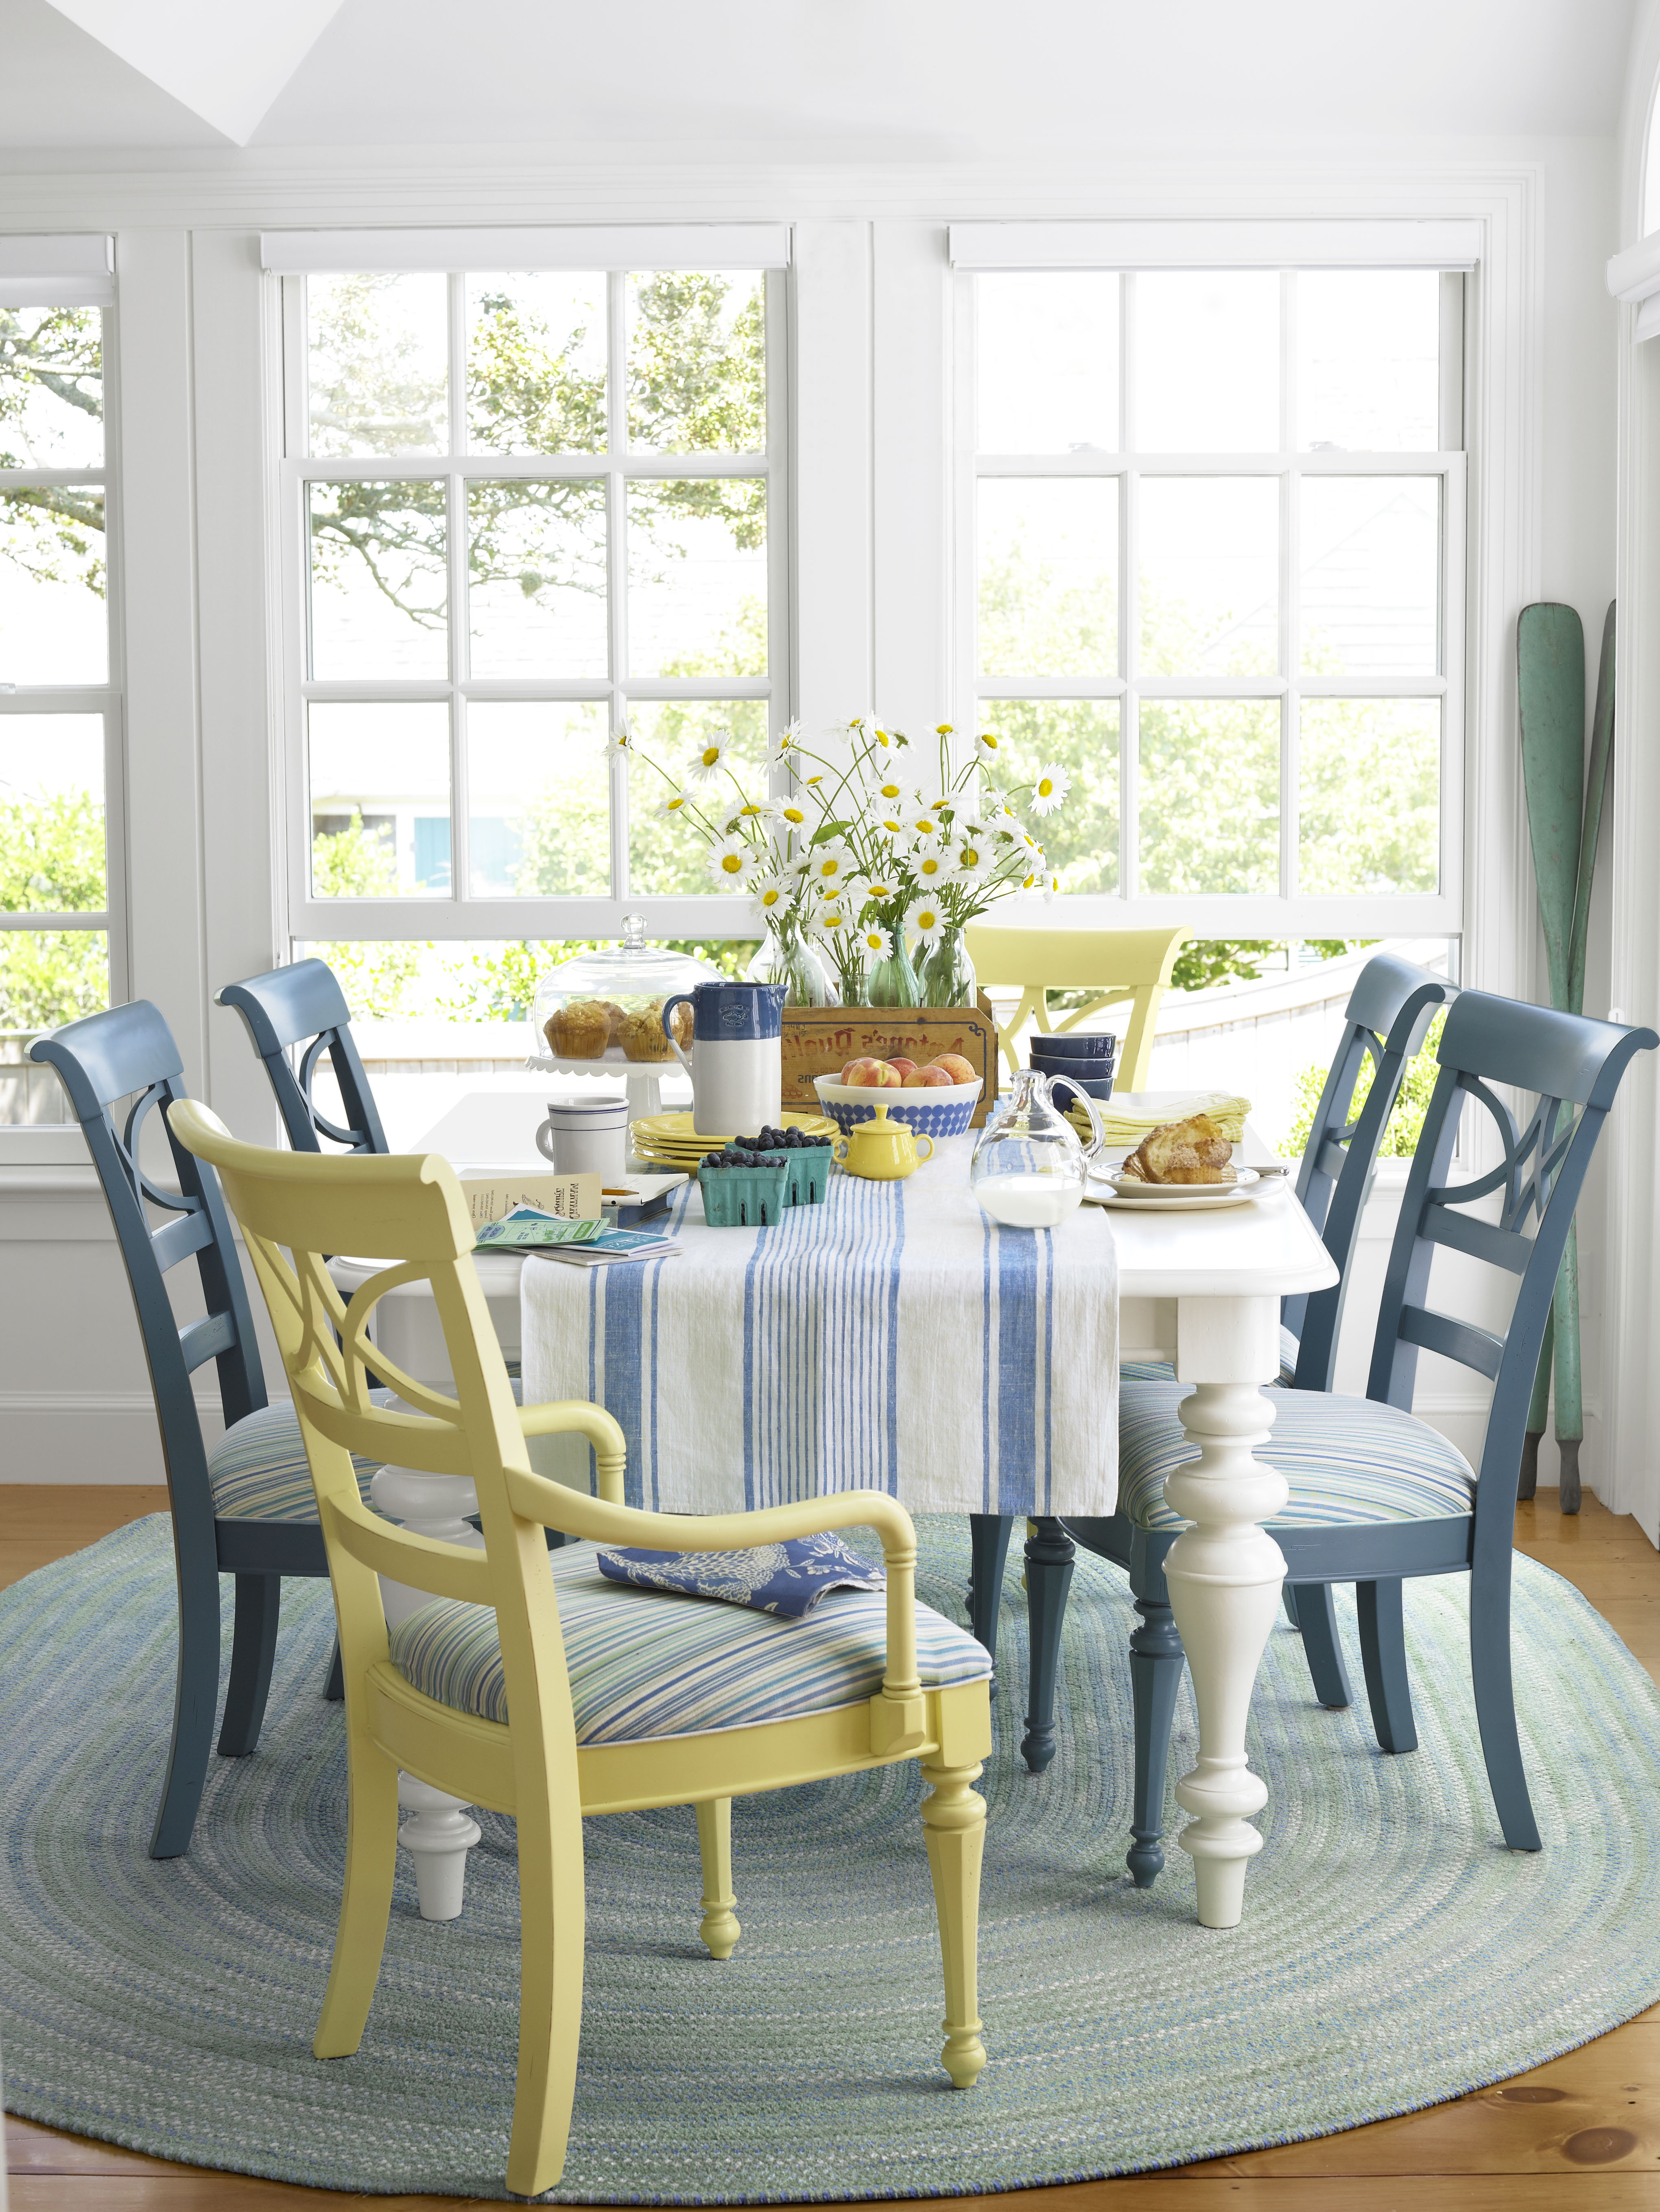 Cozy Braided Rug For Coastal Dining Room Interior (Image 4 of 15)